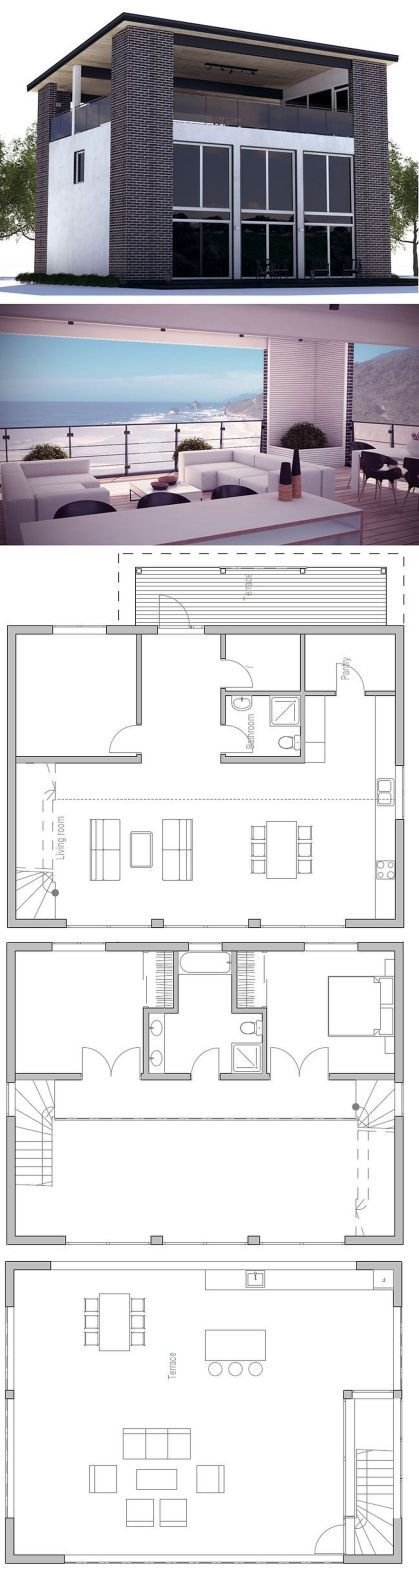 Shipping Container House Plans Ideas 77